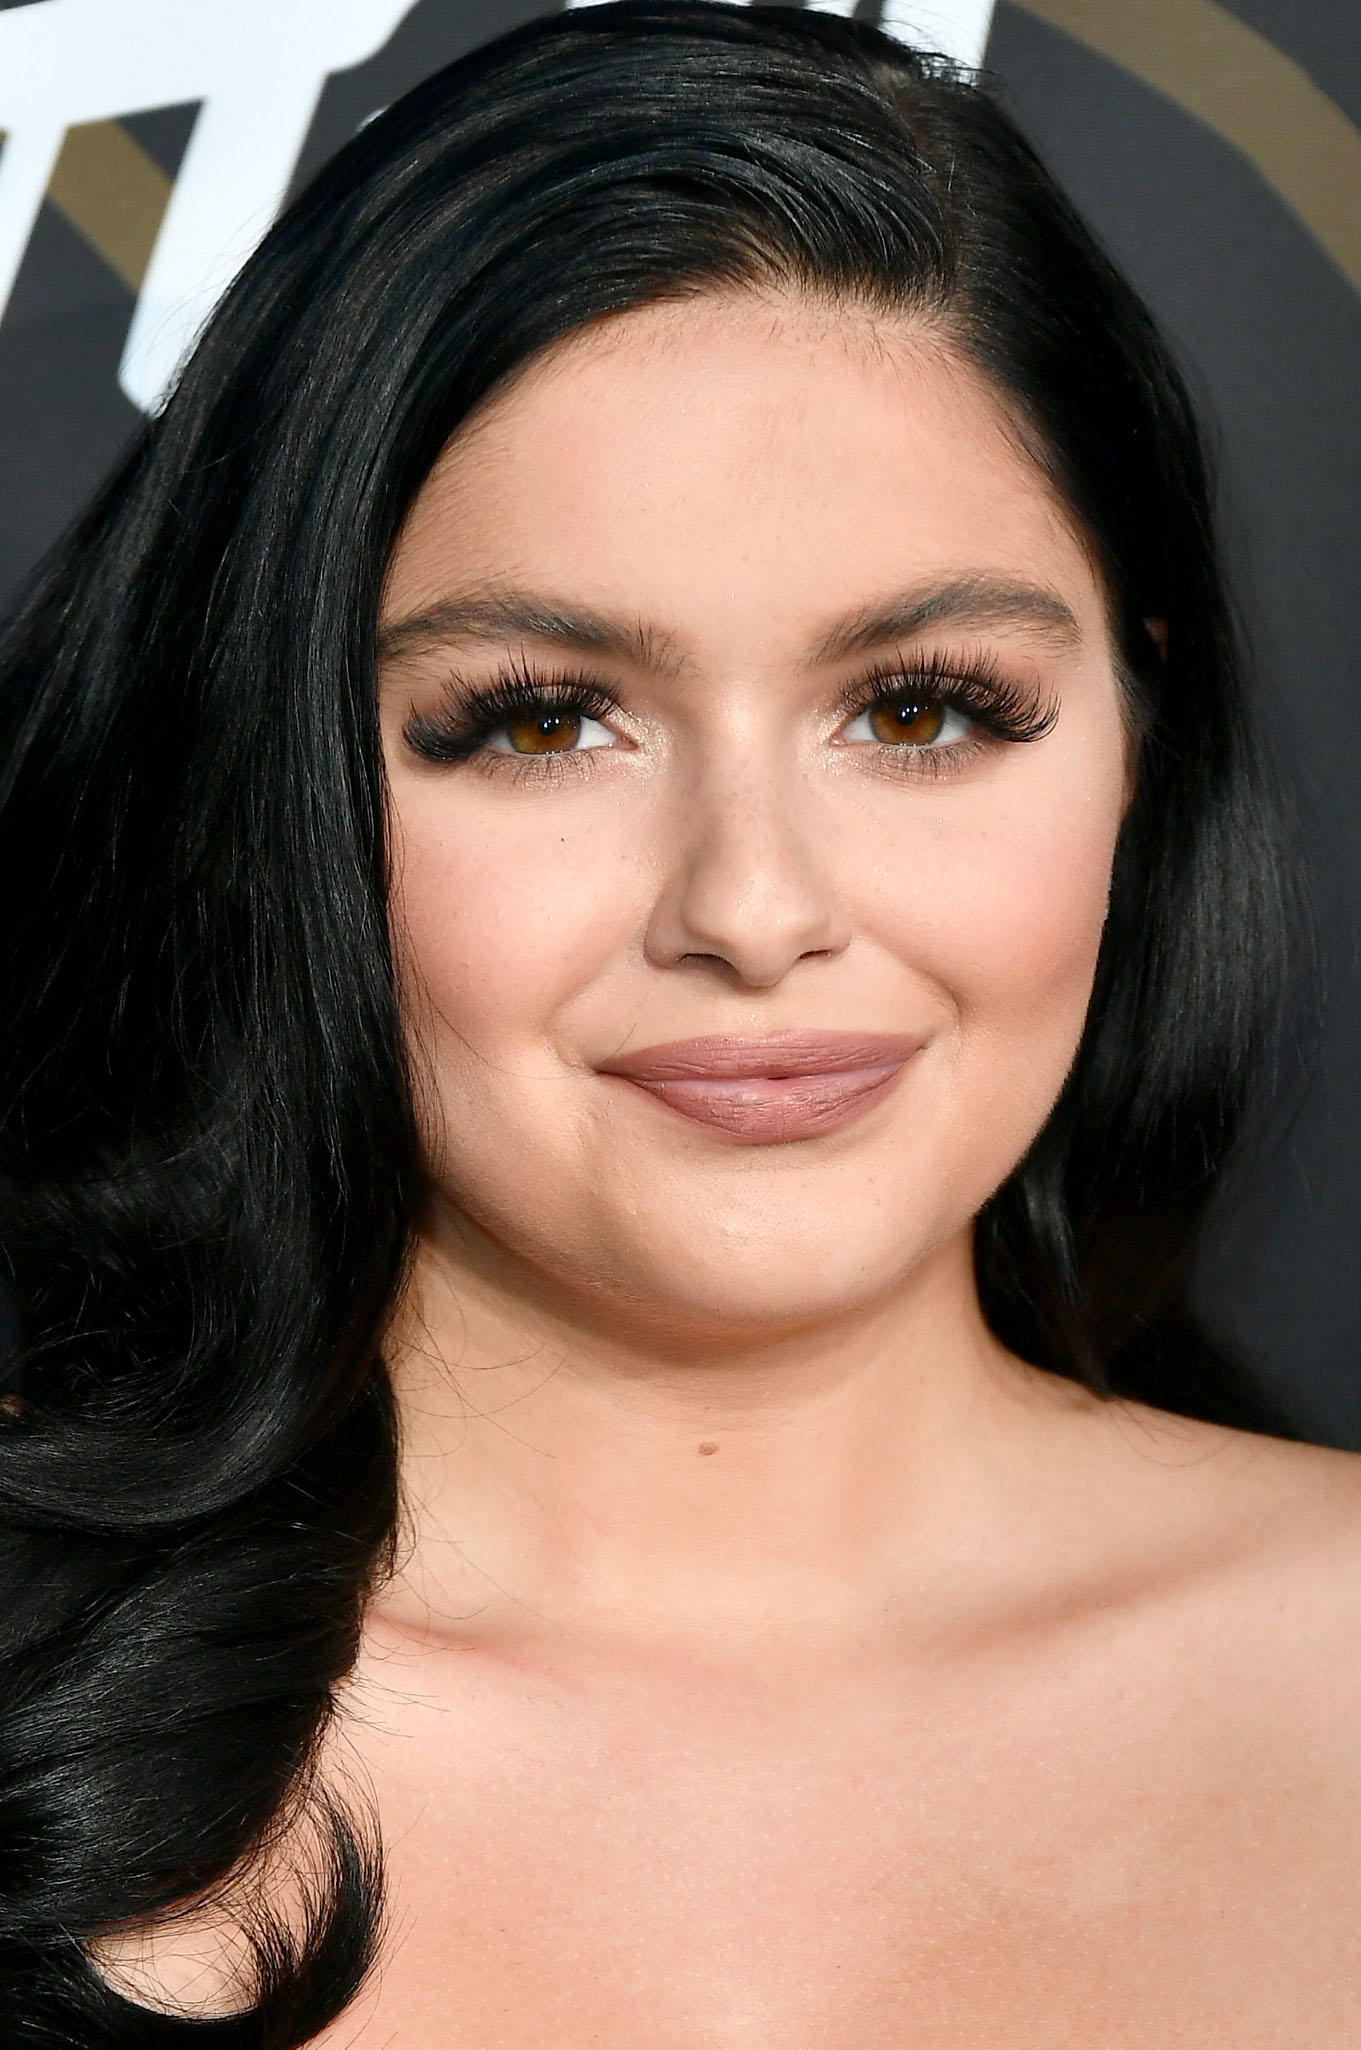 Ariel Winter at Variety Power of Young Hollywood in Los Angeles.